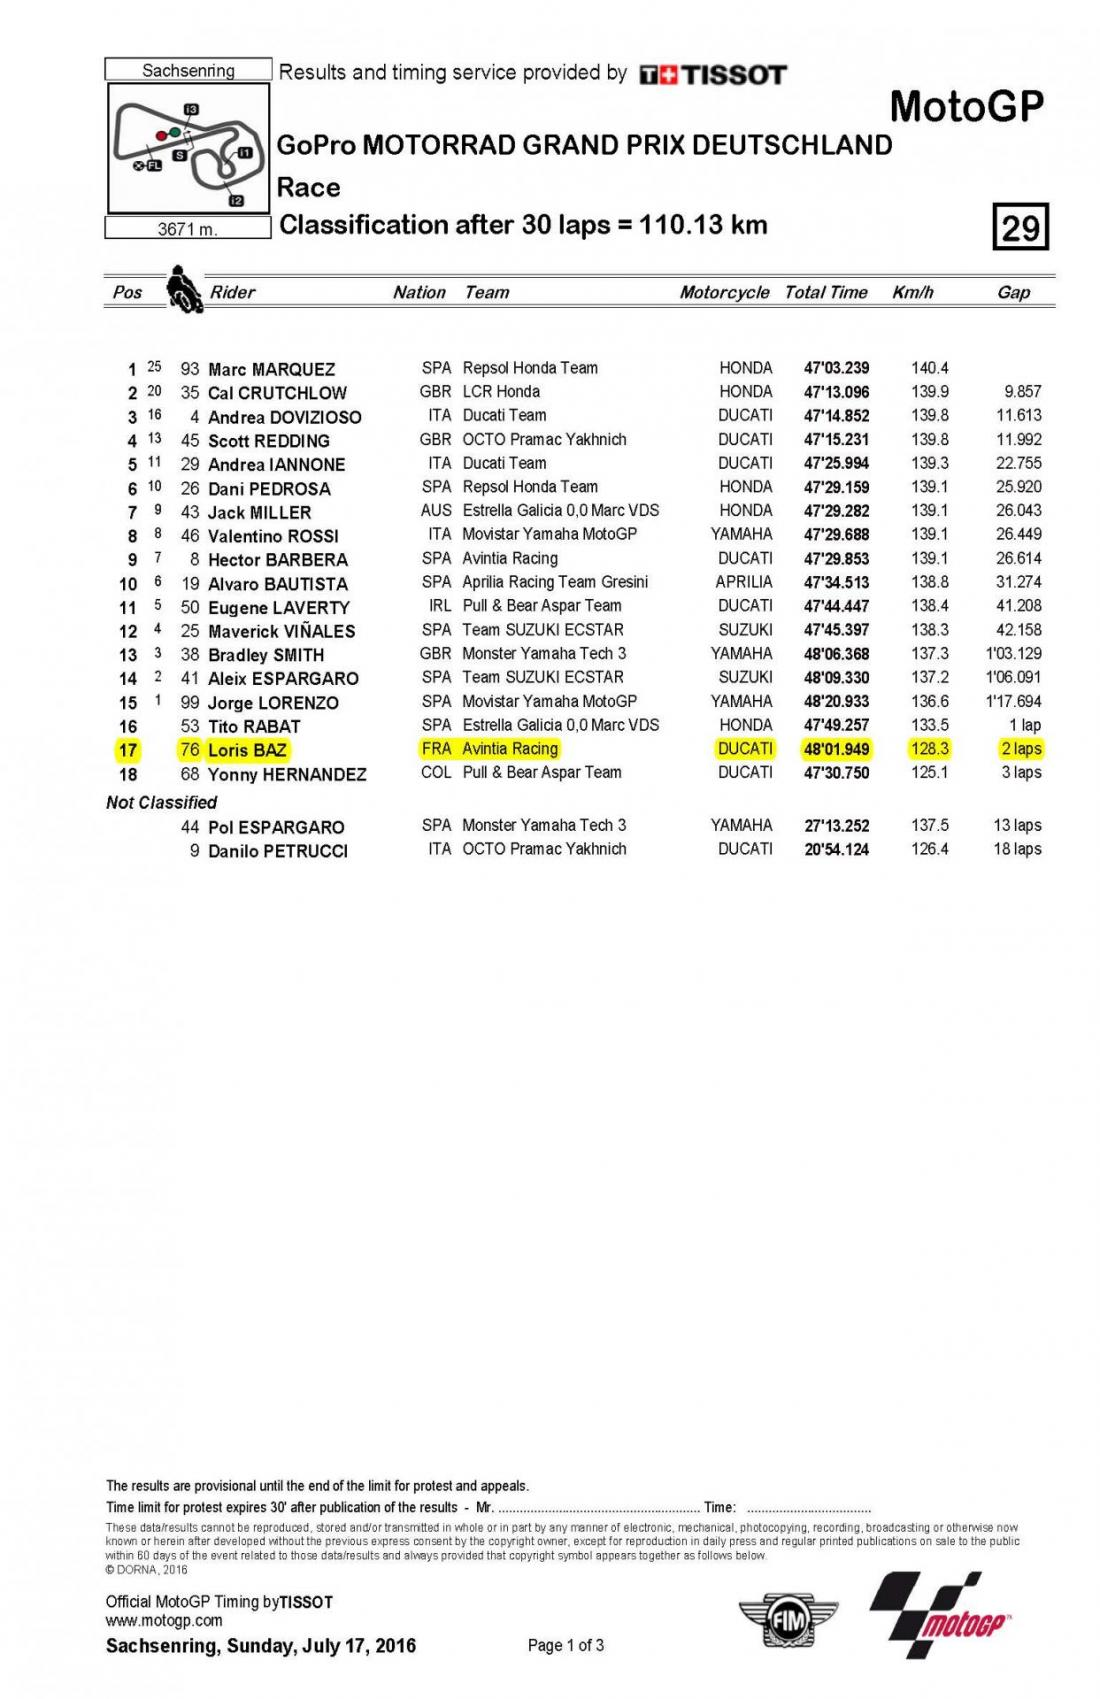 All race page 1